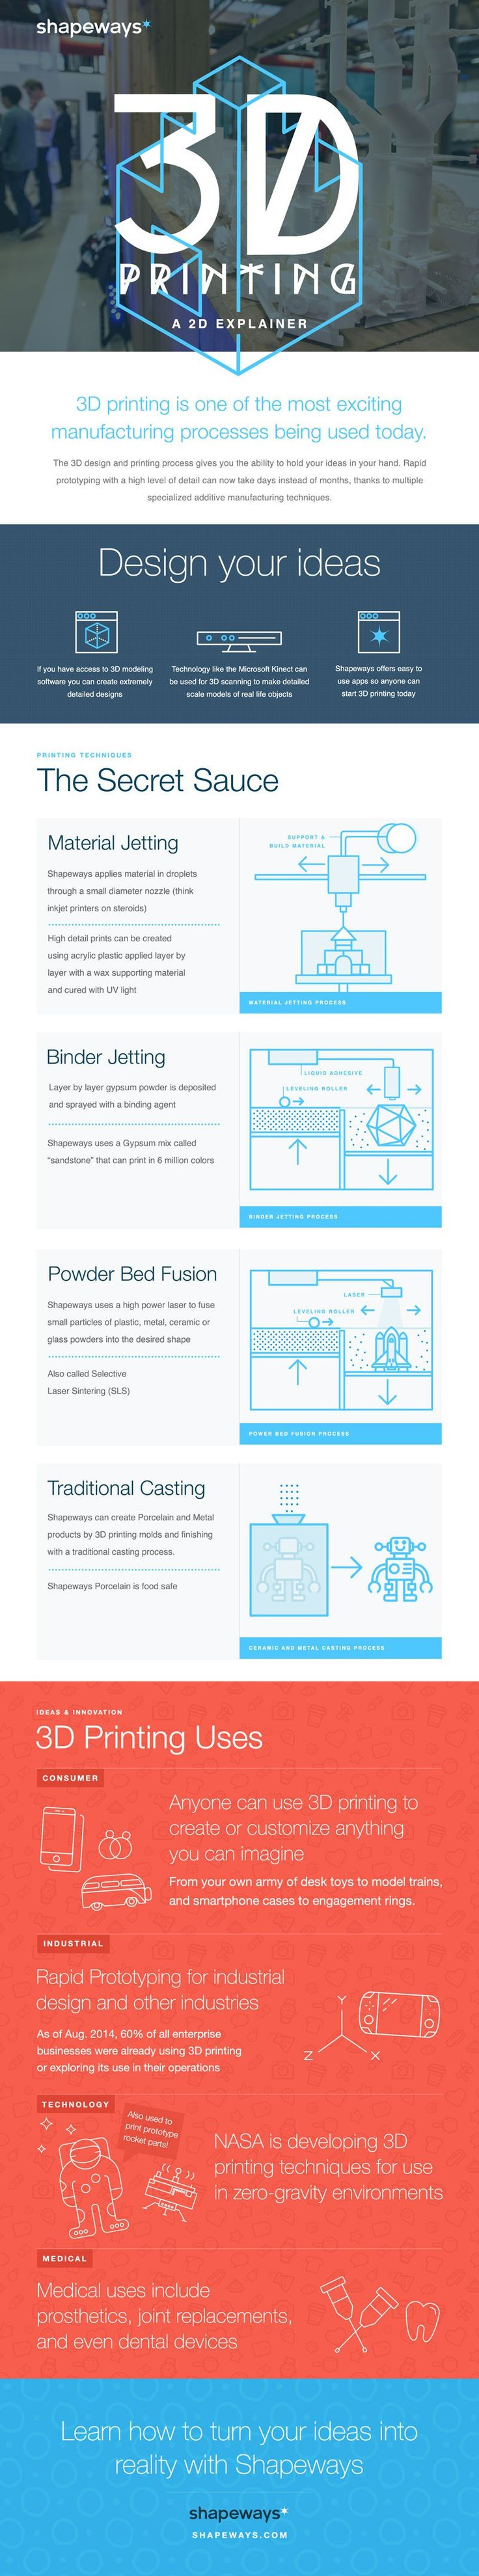 Curious to know how rapid prototyping and additive manufacturing processes in 3D printing work? View this video, infographic and informative post.